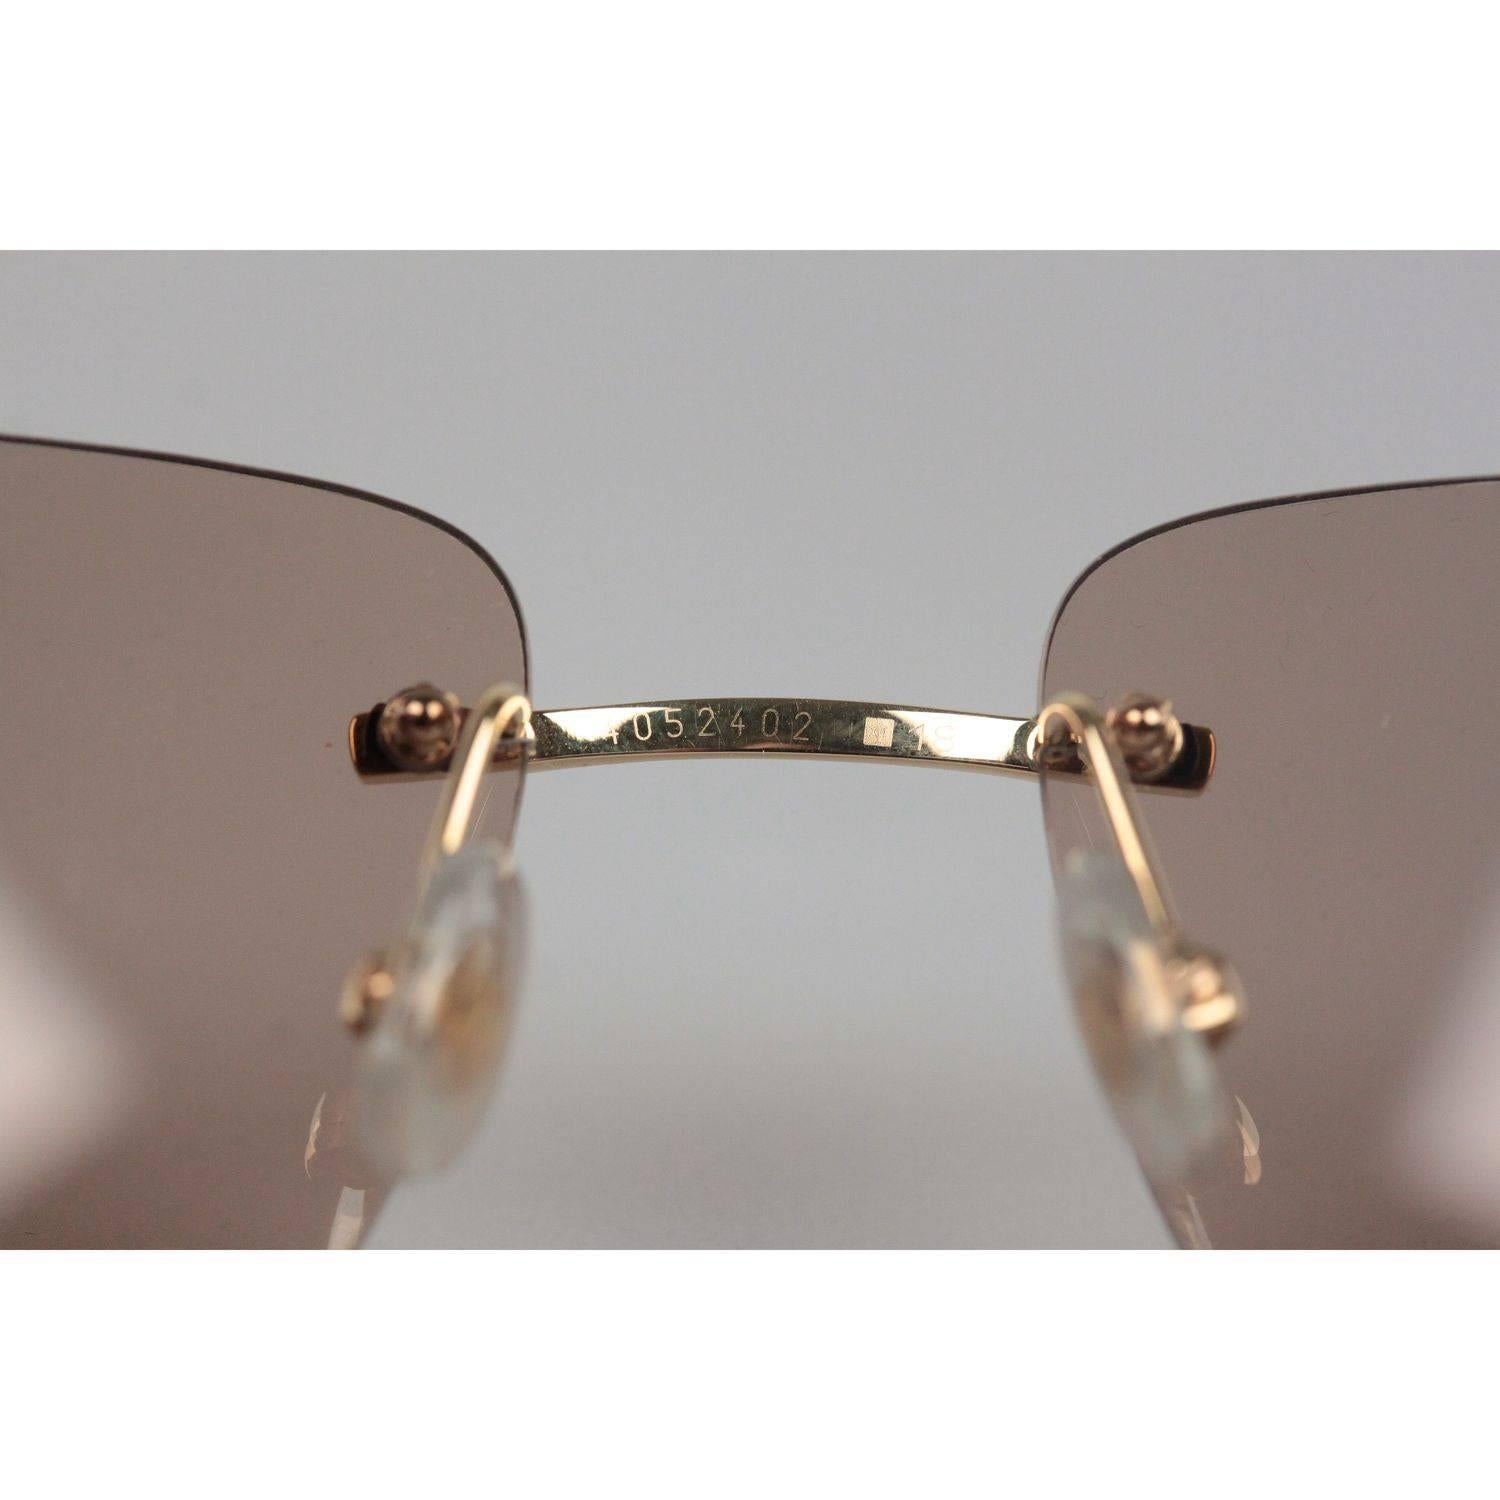 Cartier Paris Sunglasses Panthere T8200611 Gold Brown 110 at 1stdibs